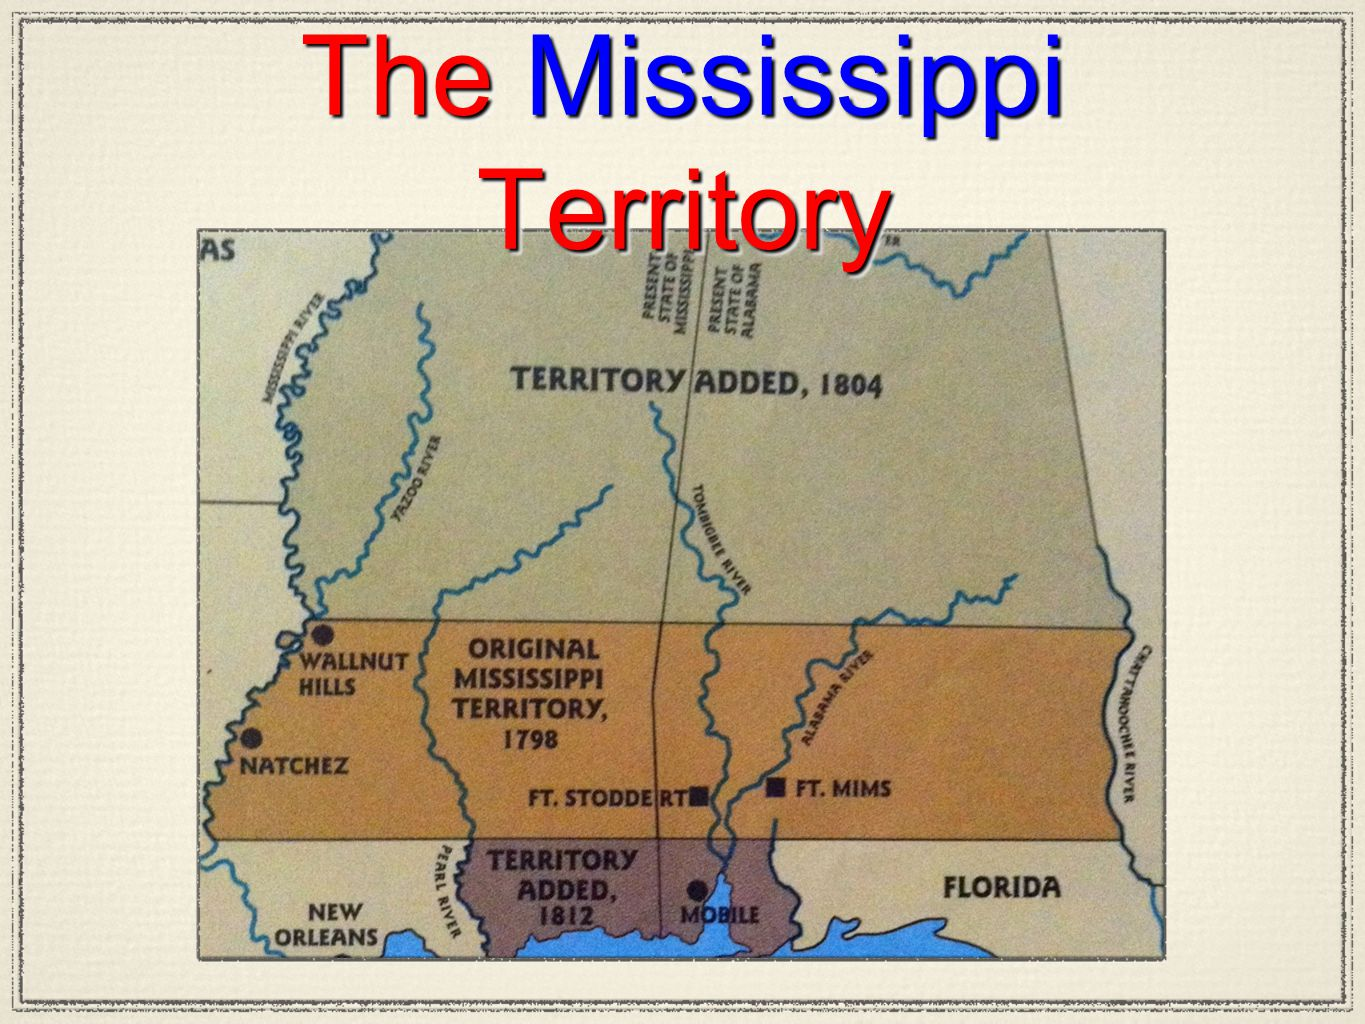 The Mississippi Territory